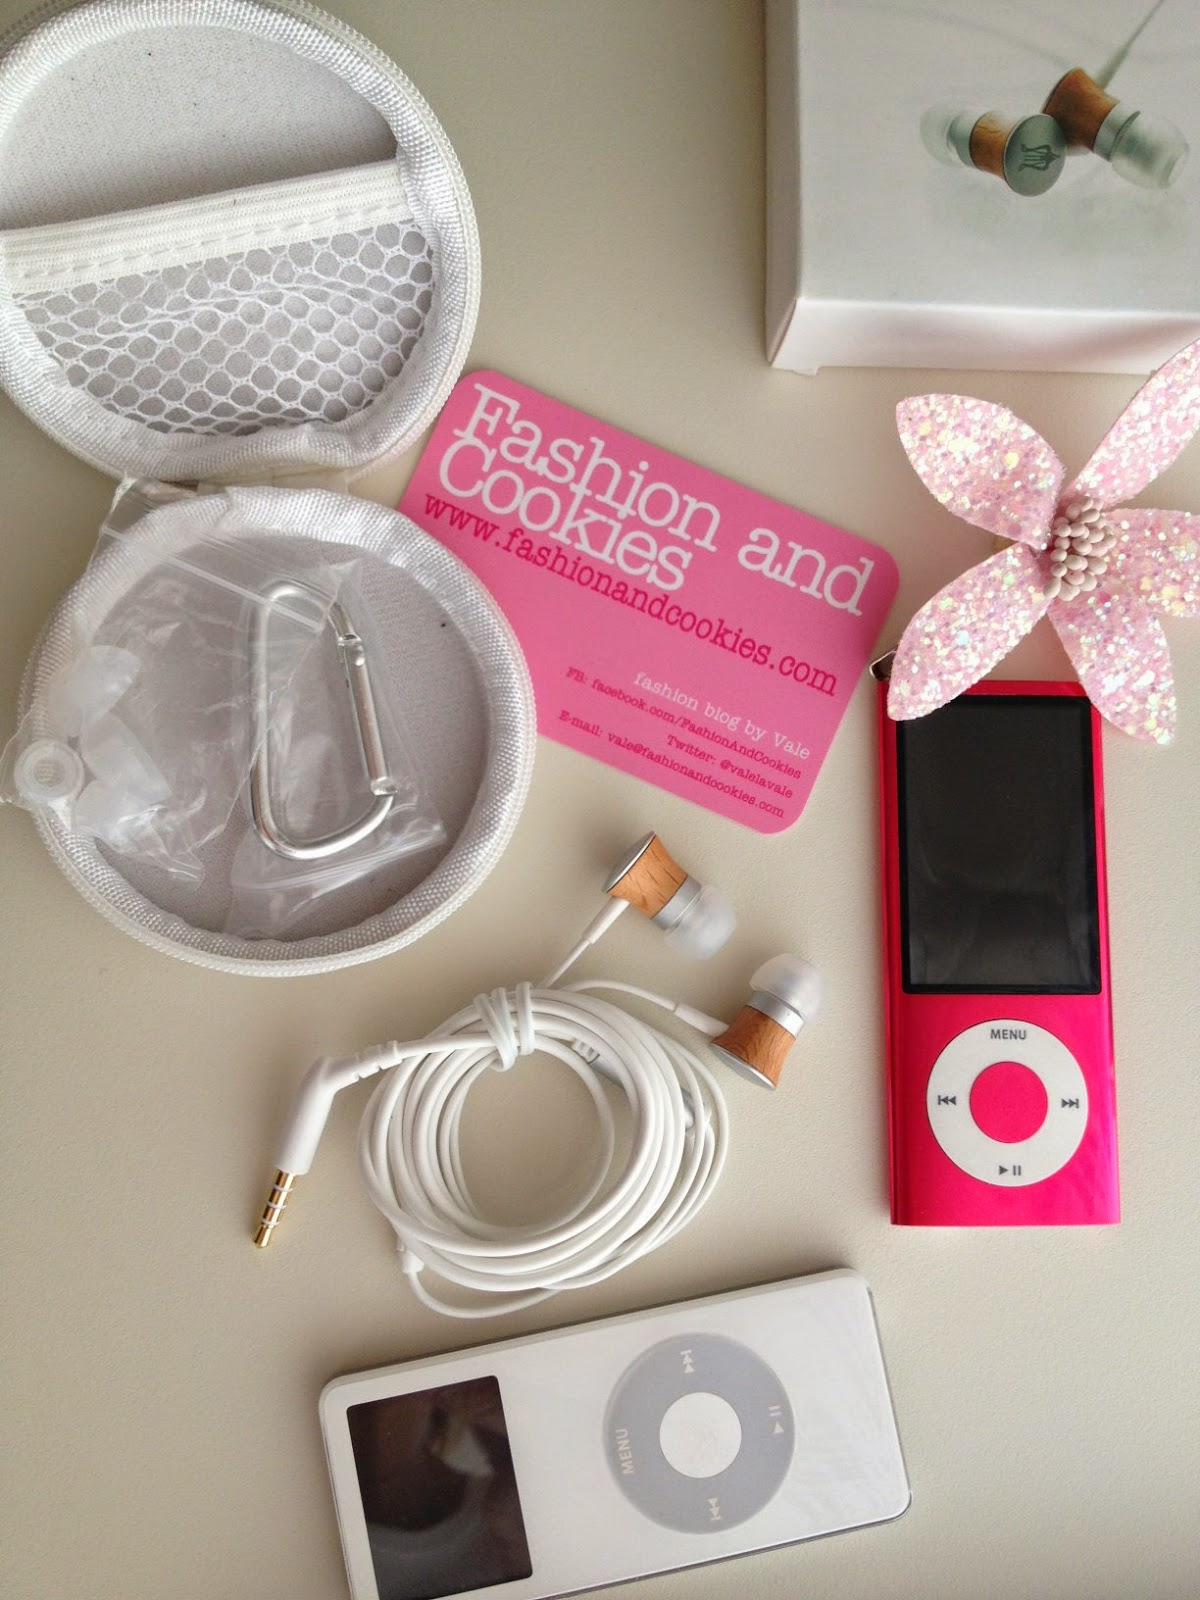 Meze 11 Deco, wood earphones, meze sound device review, Fashion and Cookies, fashion blogger